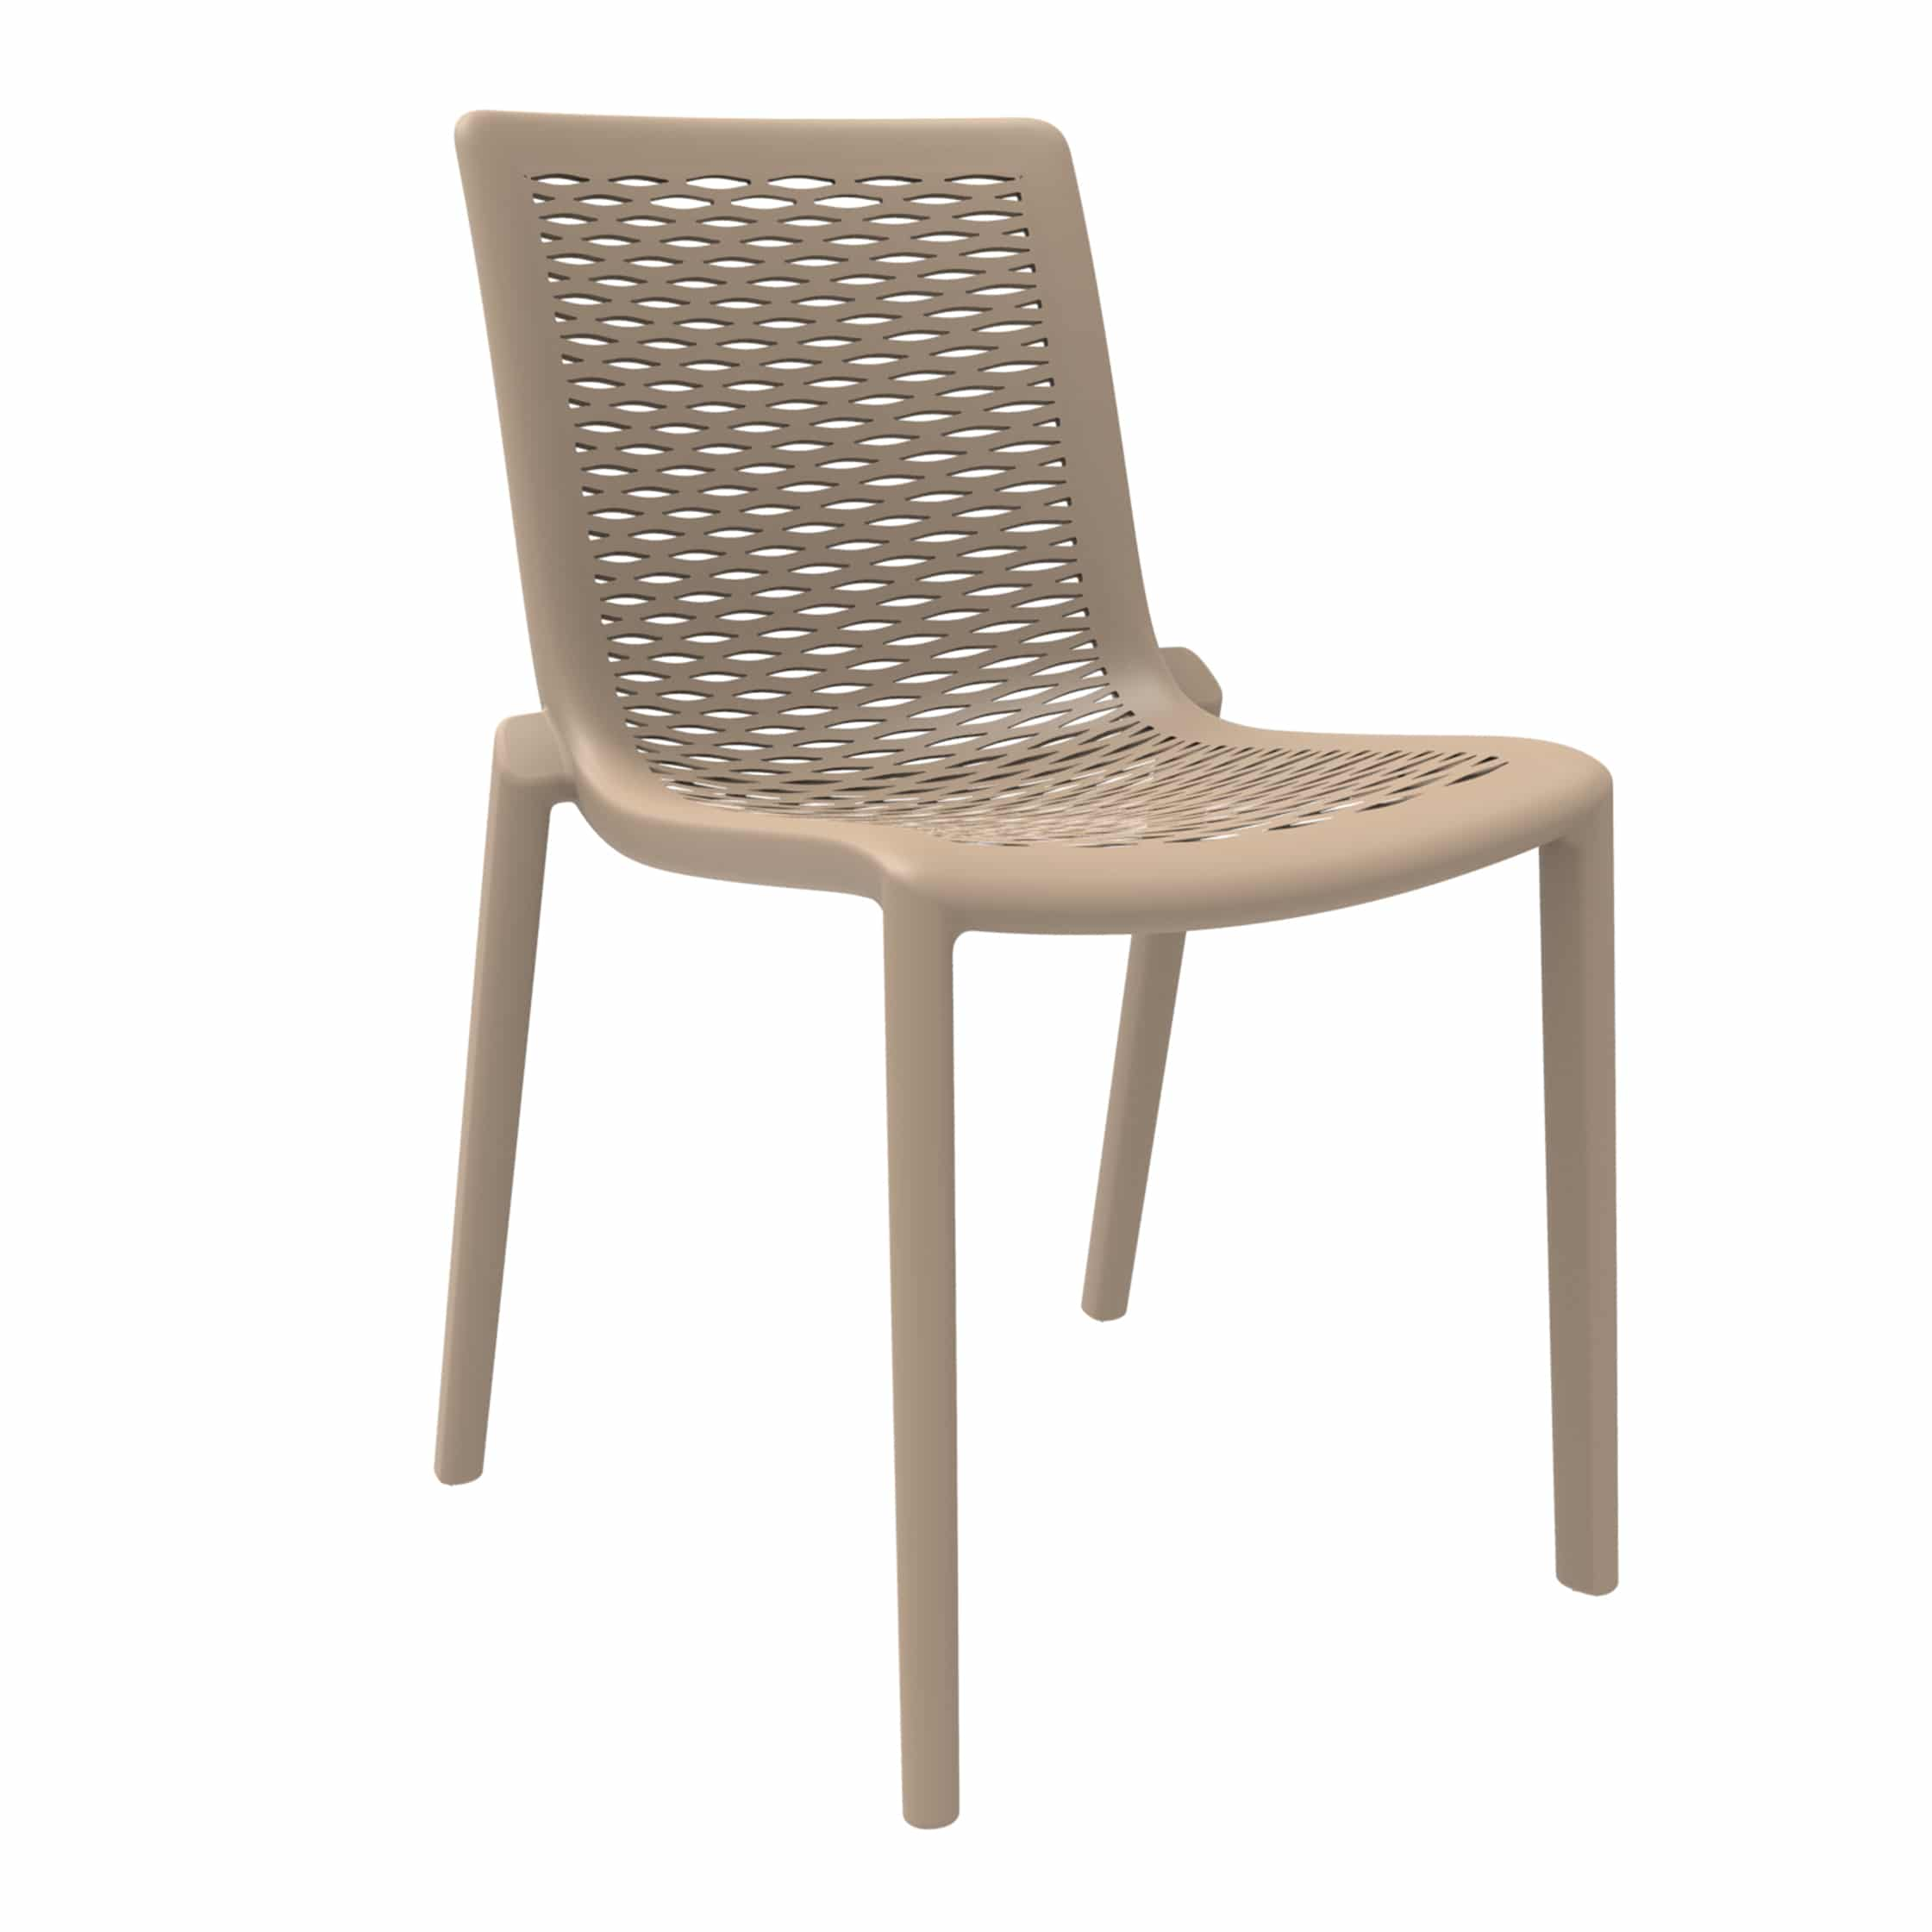 <p>Outdoor Furniture Contemporary Collection – Manteca Chair – Chocolate.</p> <p> </p> <p>Chair specially designed for indoor and outdoor available in a variety of colours, stackable, capturing essential features such as lightness, stability, functionality, ergonomics and care for the environment. Unassuming in design and look</p>